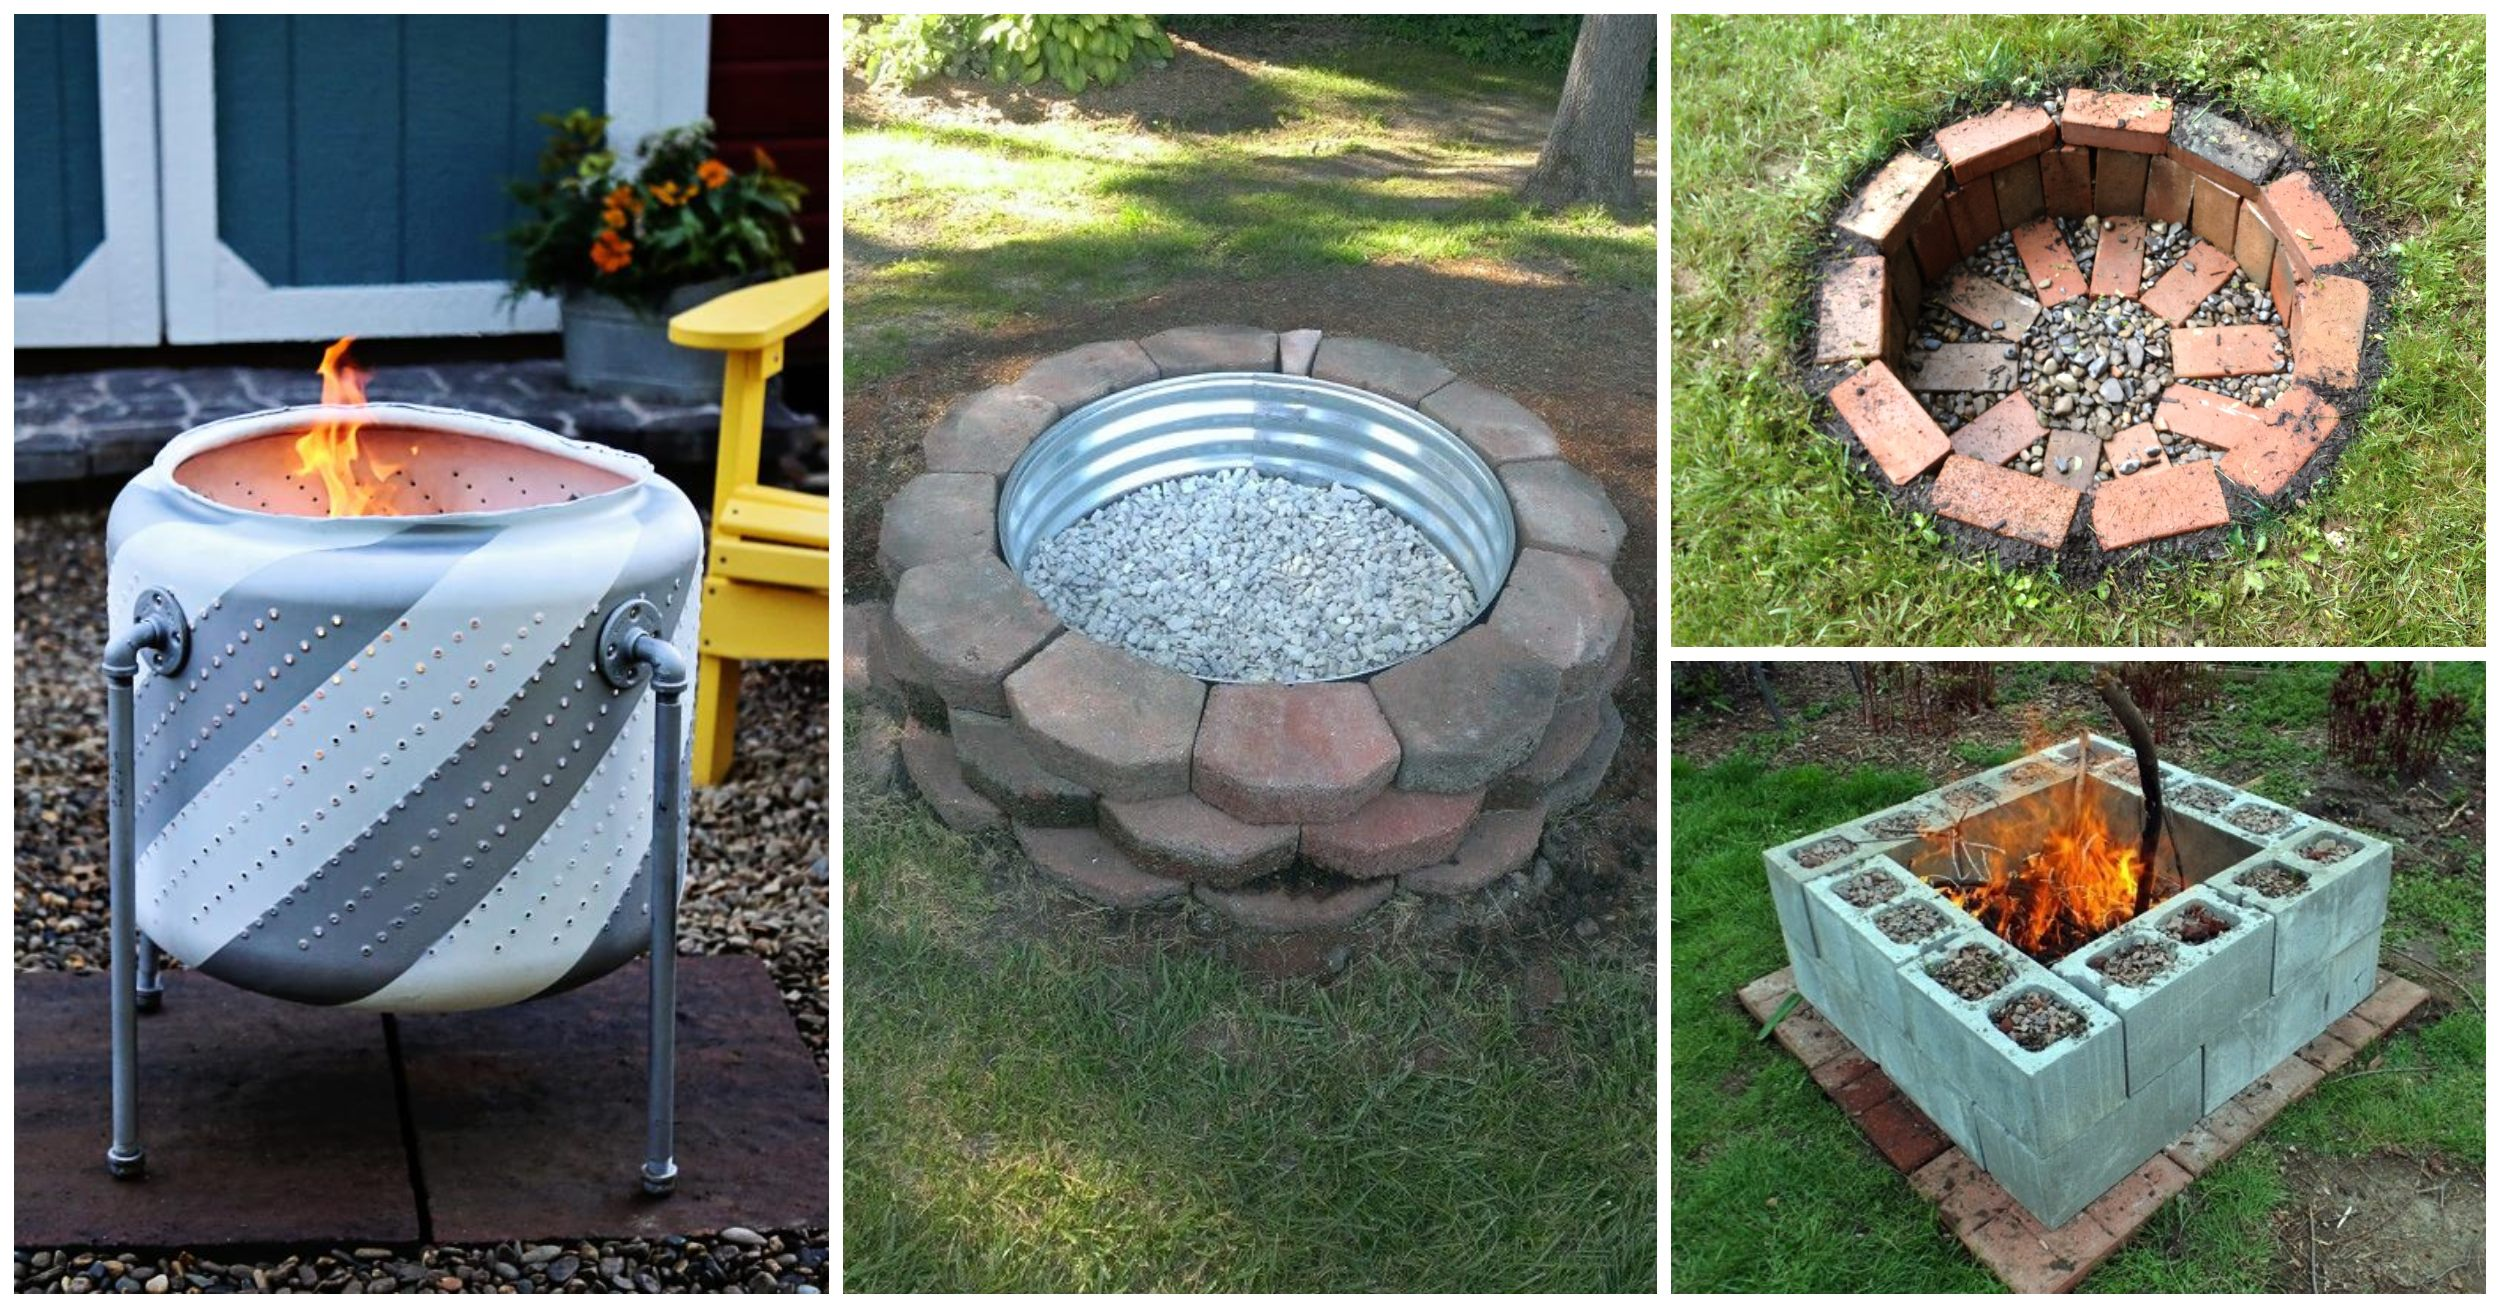 Various fire pit types, including creative designs and simply do-it-yourself projects.